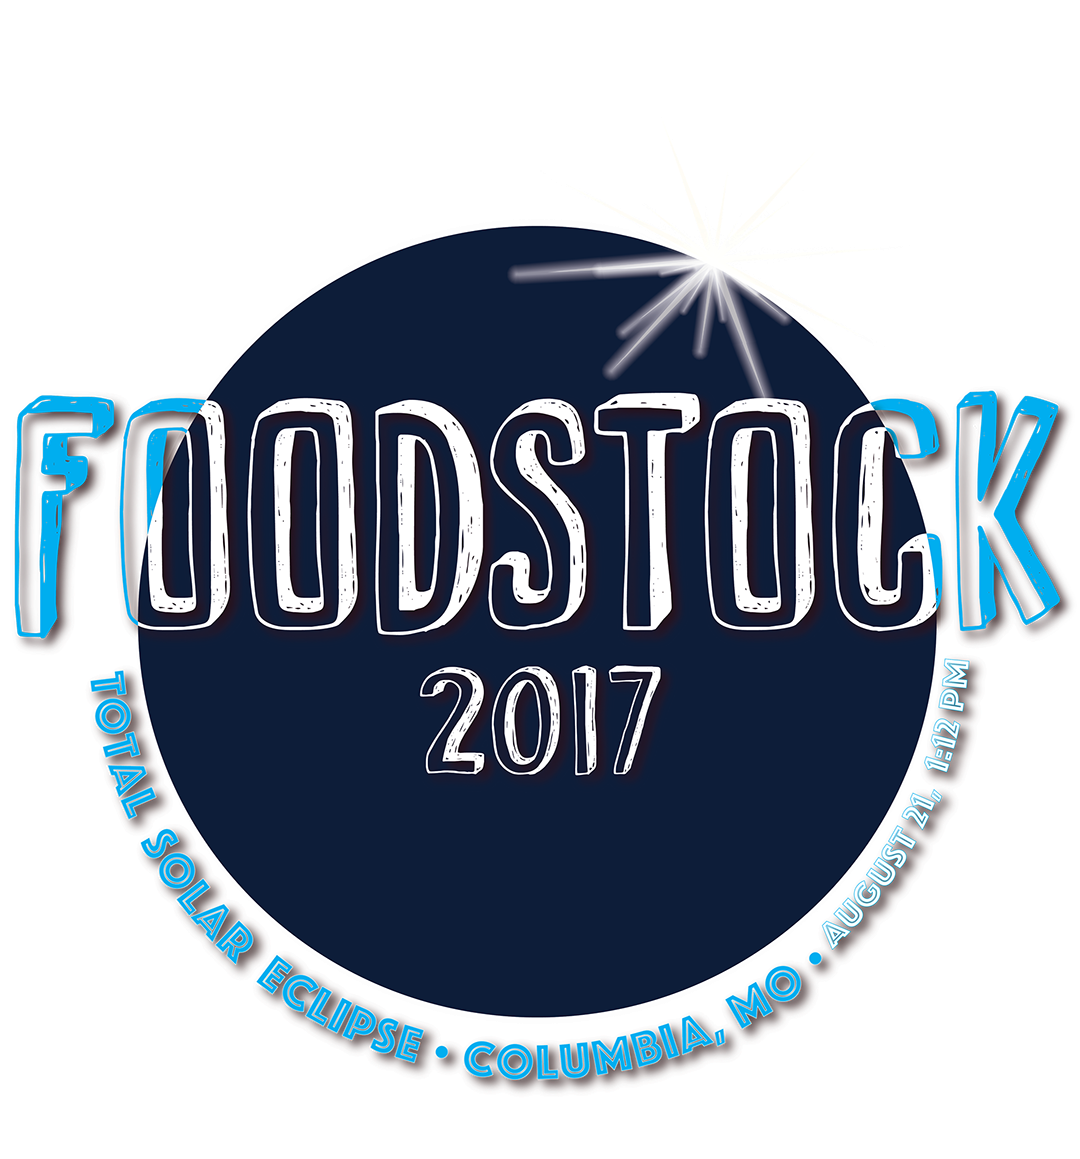 FoodStock - When:  August 21st | 11:00am-8:00pmWhere: Corporate LakeFree Event!Food Trucks, Local Artisans, Beer Garden, Games, Fireworks, Hot Air Balloon, Live Music, Contests, and Restaurants